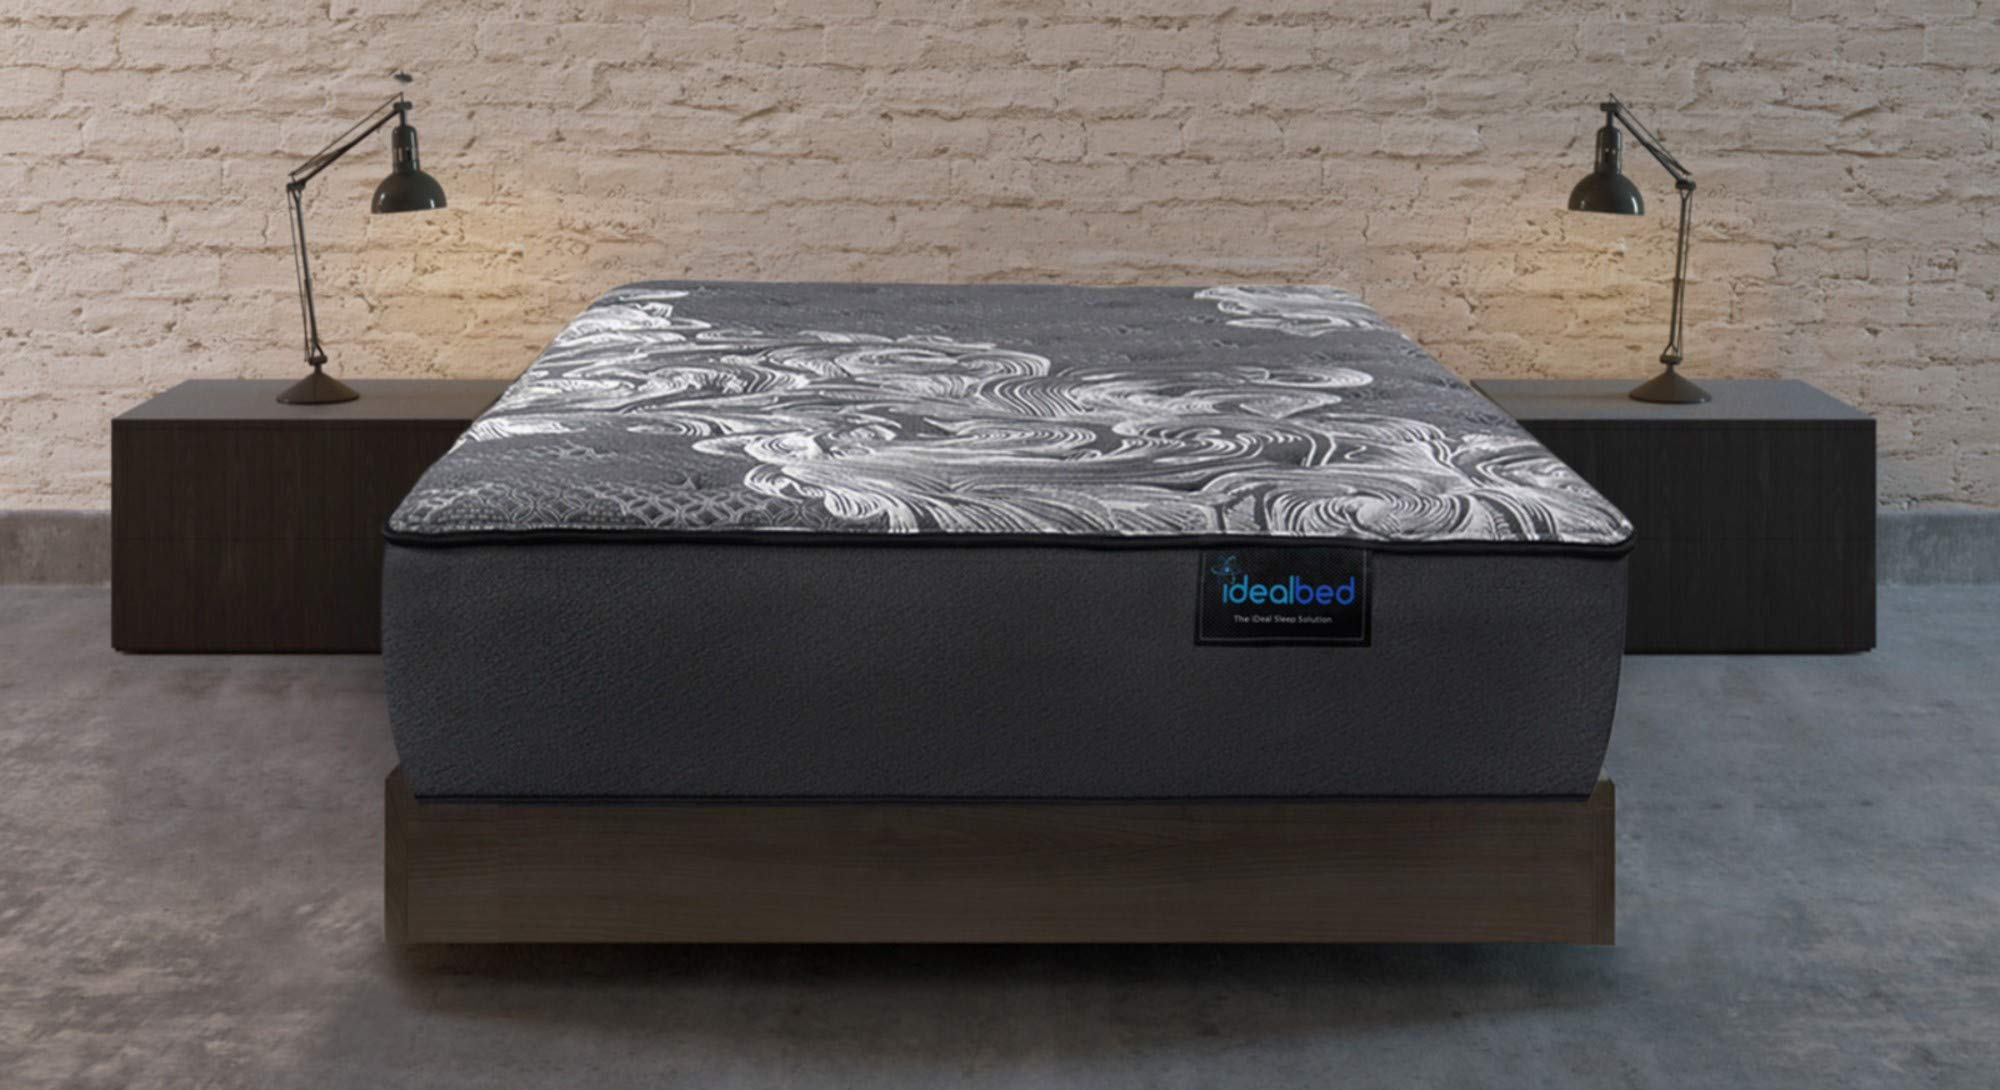 iDealBed Luxe Series iQ5 Hybrid Luxury Plush Mattress, Smart Adapt Hybrid Coil & Foam System Optimal Temperature Regulation, Pressure Relief Support, Made in USA, 10 Year Warranty (Queen) by iDealBed